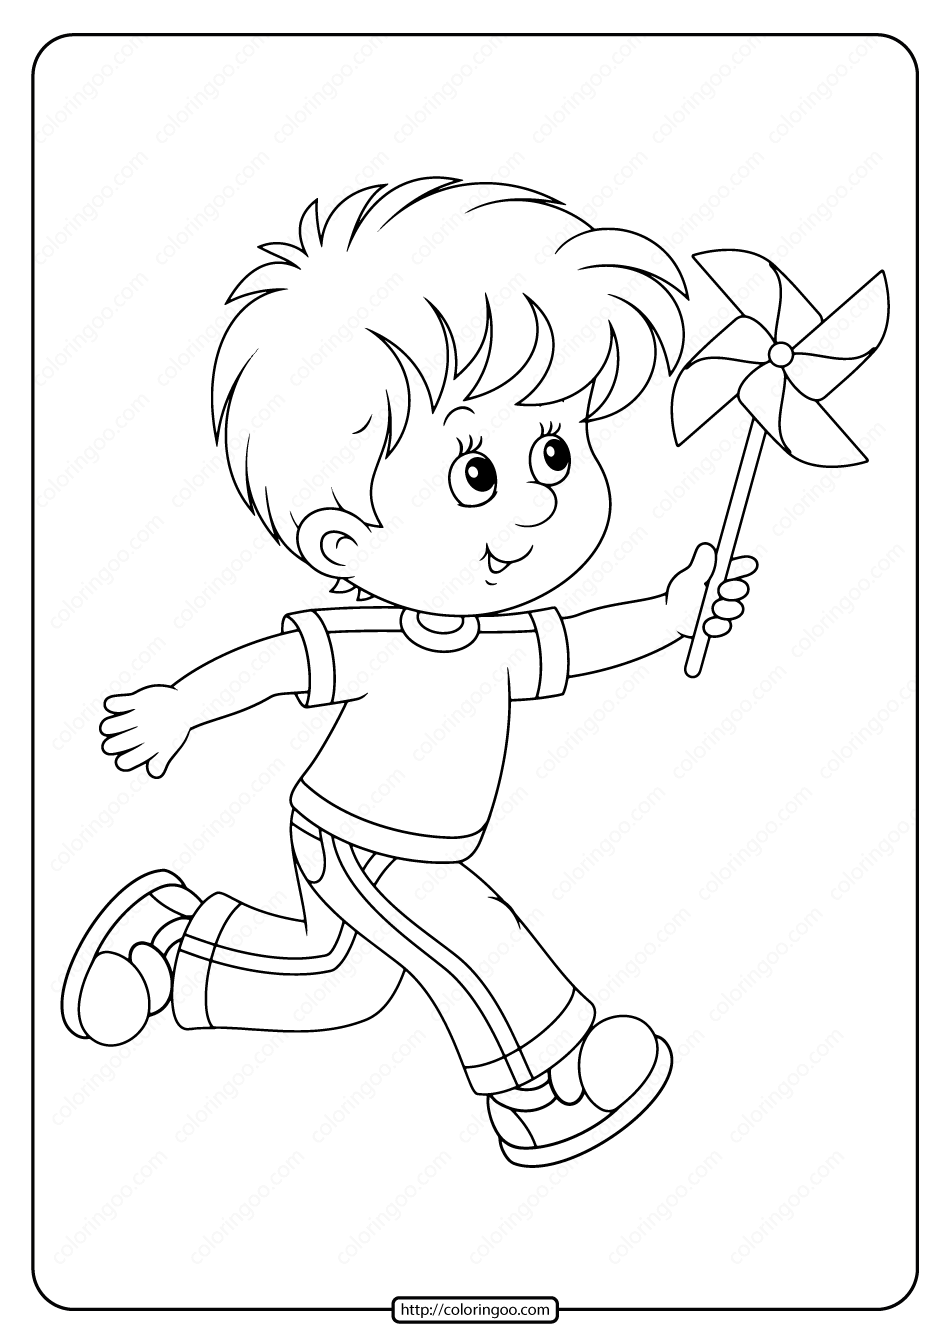 https://coloringoo.com/wp-content/uploads/2020/04/boy-playing-with-pinwheel-pdf-coloring-page.pdf